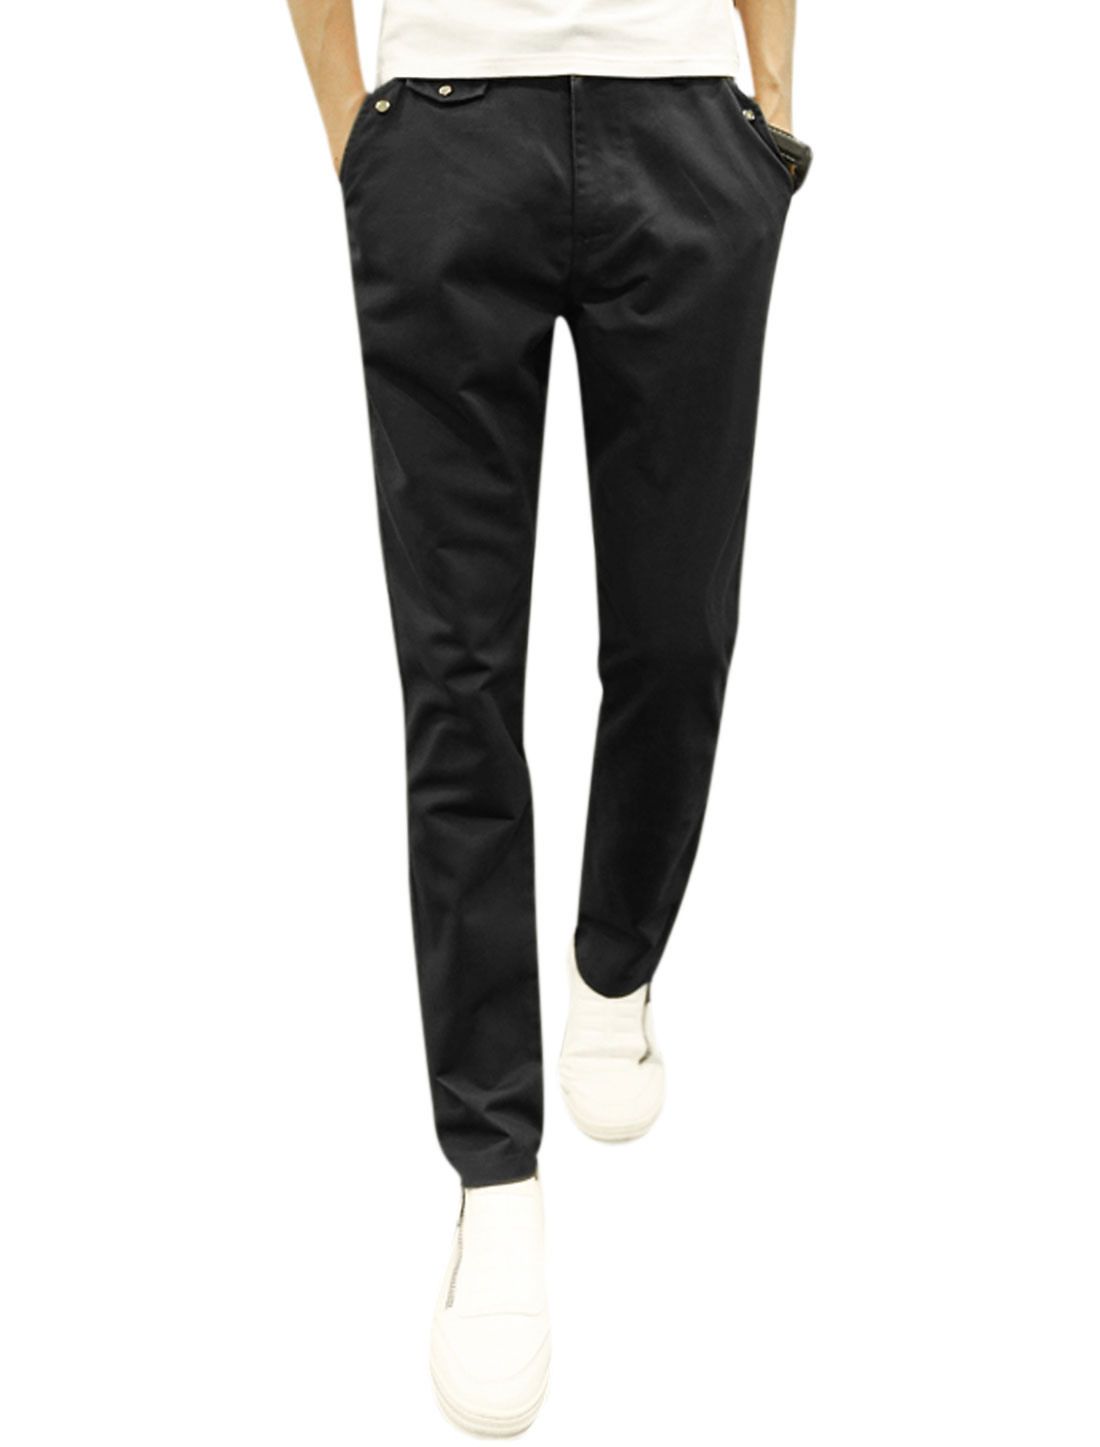 Men Tapered Two Hip Pockets Mid Rise Zip Fly Casual Chino Pants Black W32